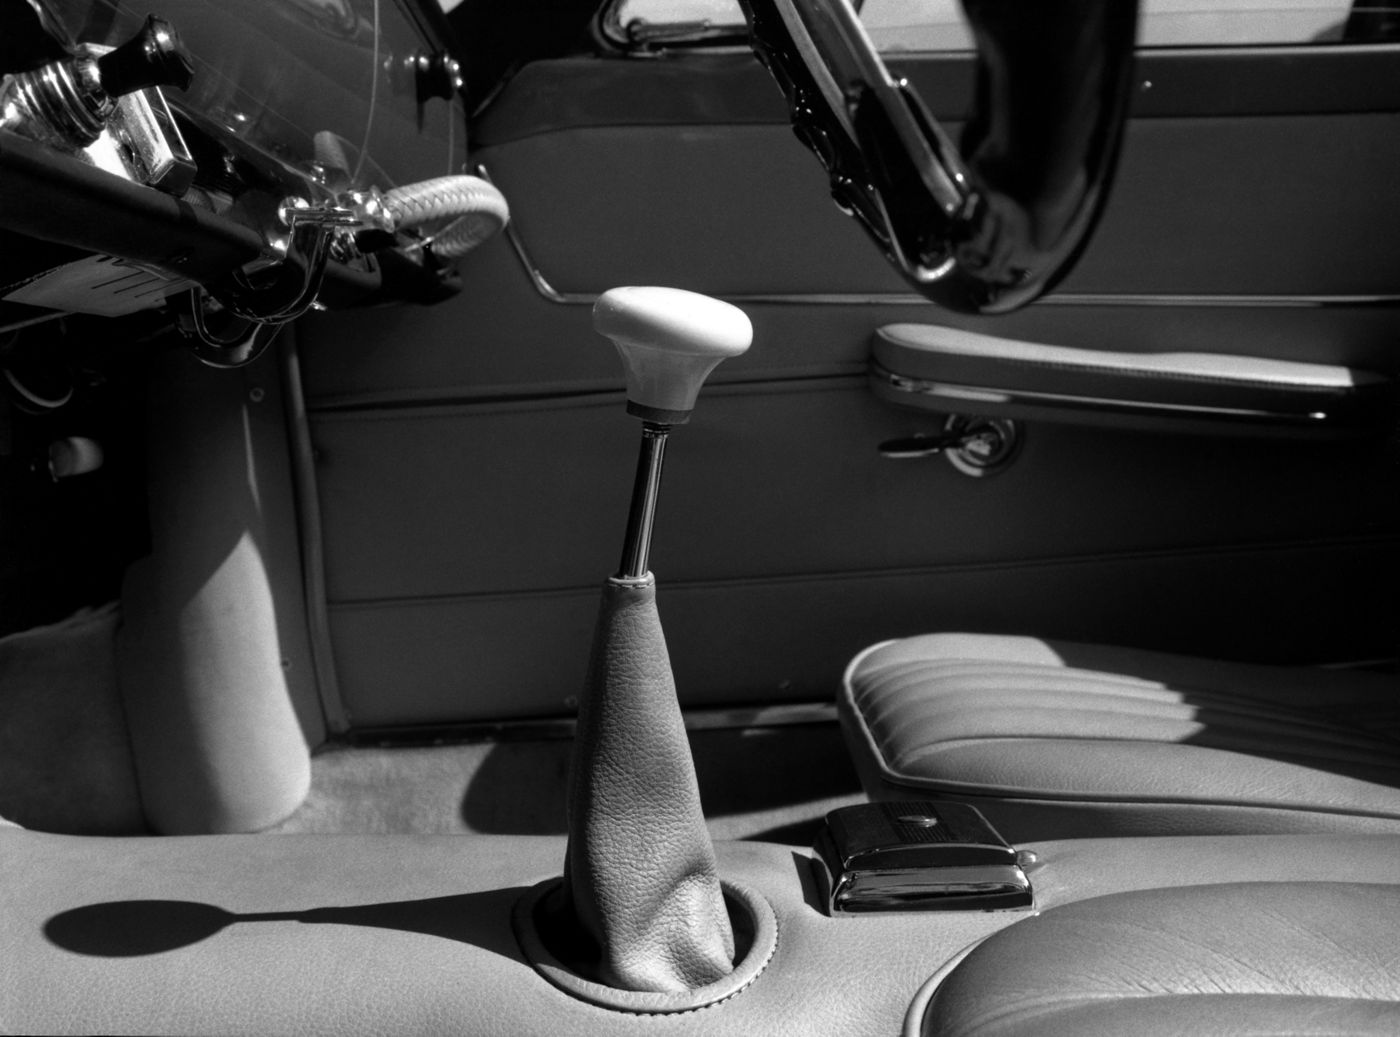 1958 Maserati 3500GT Spyder - interior of the classic open-top GranTurismo